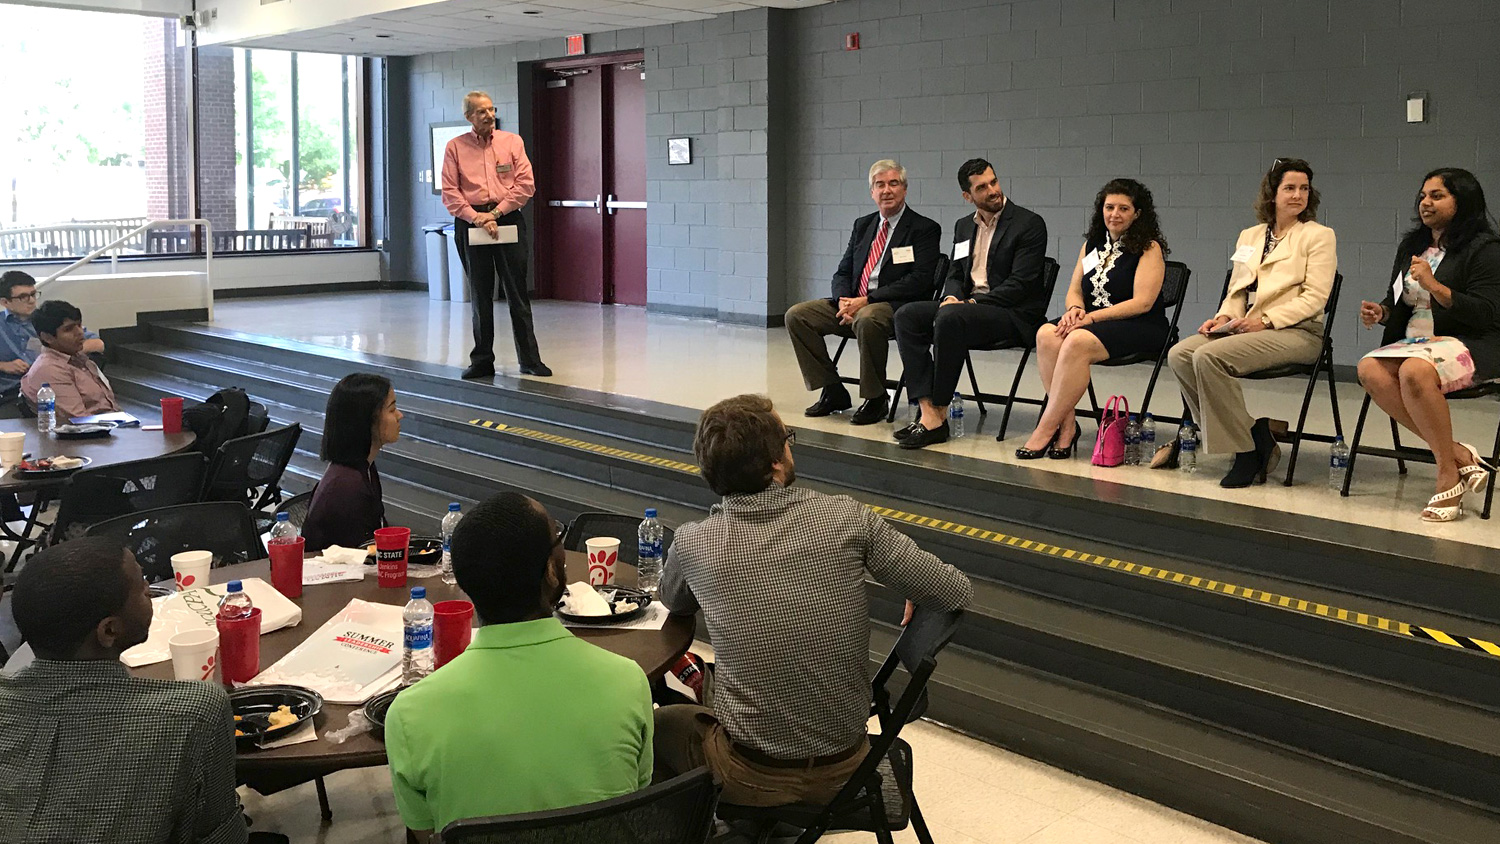 Accounting professionals and students discuss accounting career paths at 2019 NCACPA Leadership Conference at NC State University. Panelists, left to right, are David Erwin, NC Department of State Treasurer; Jared Korver, Beacon Wealthcare; Amy Hilliard, Dixon Hughes Goodman; Alice Mariano, NC Farm Bureau Mutual Insurance Company; Abi Raja, Ply Gem.